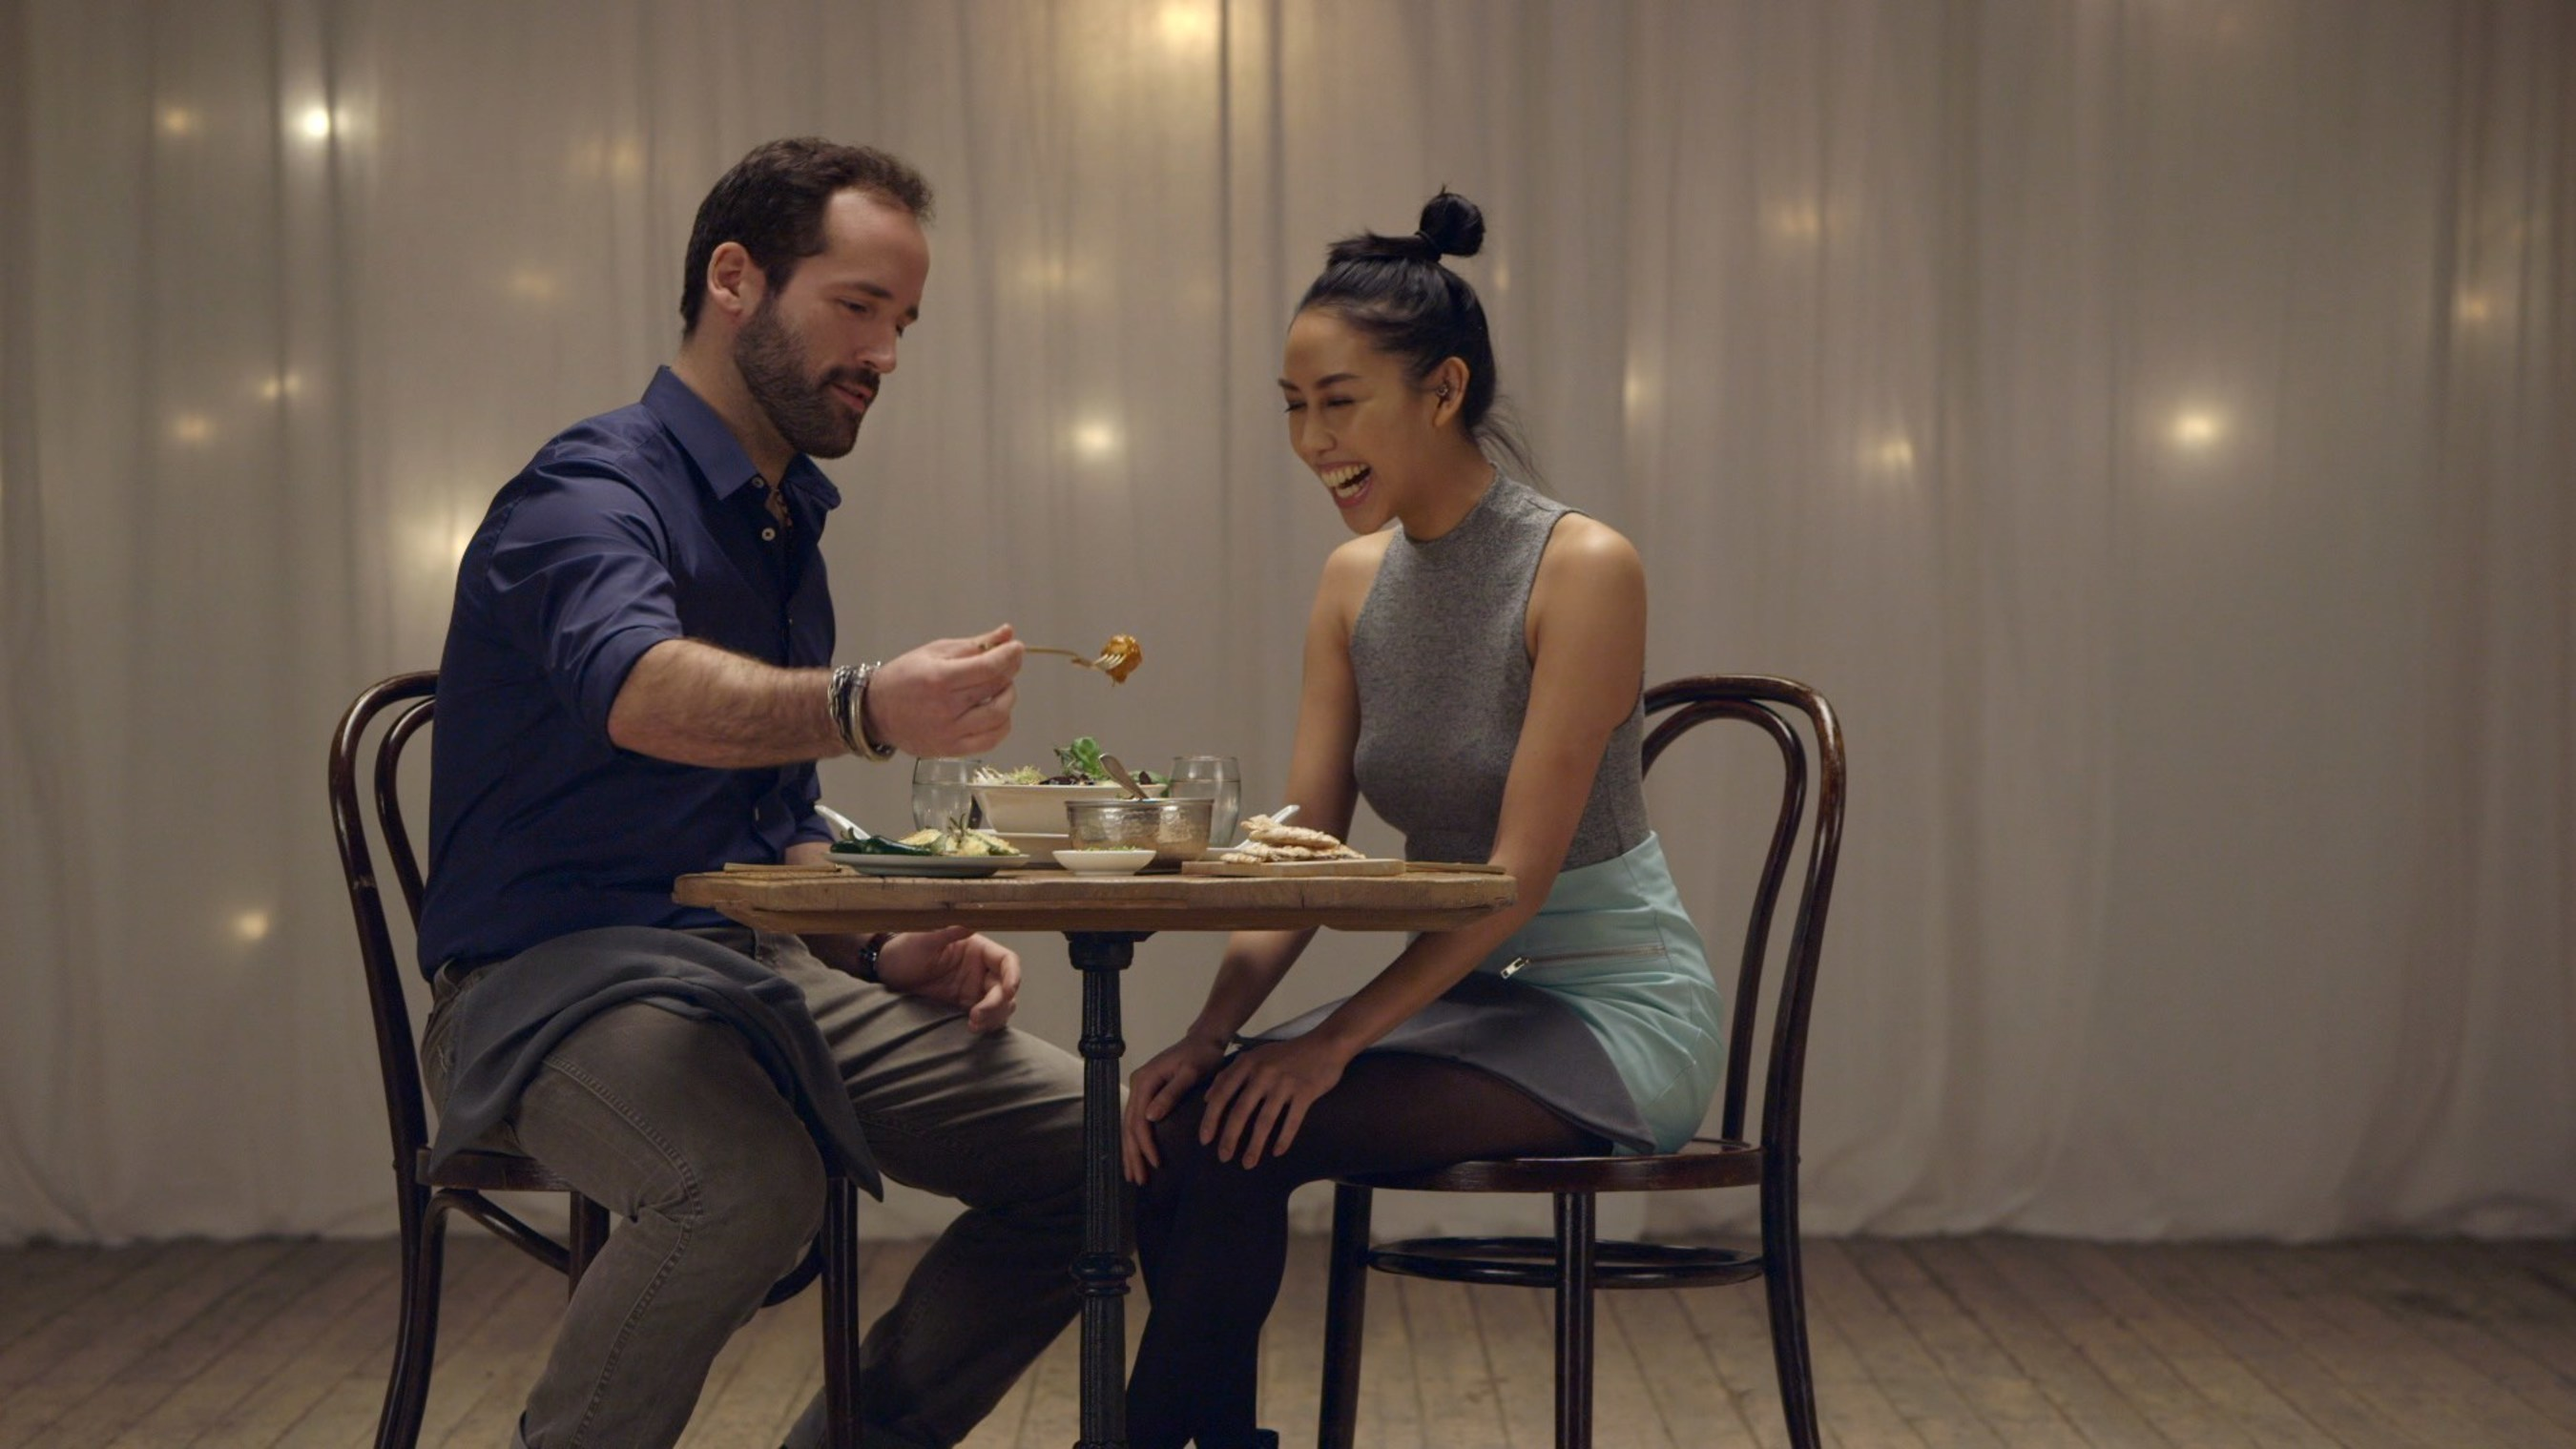 Couples were matched by flavor profiles and asked to feed each other.